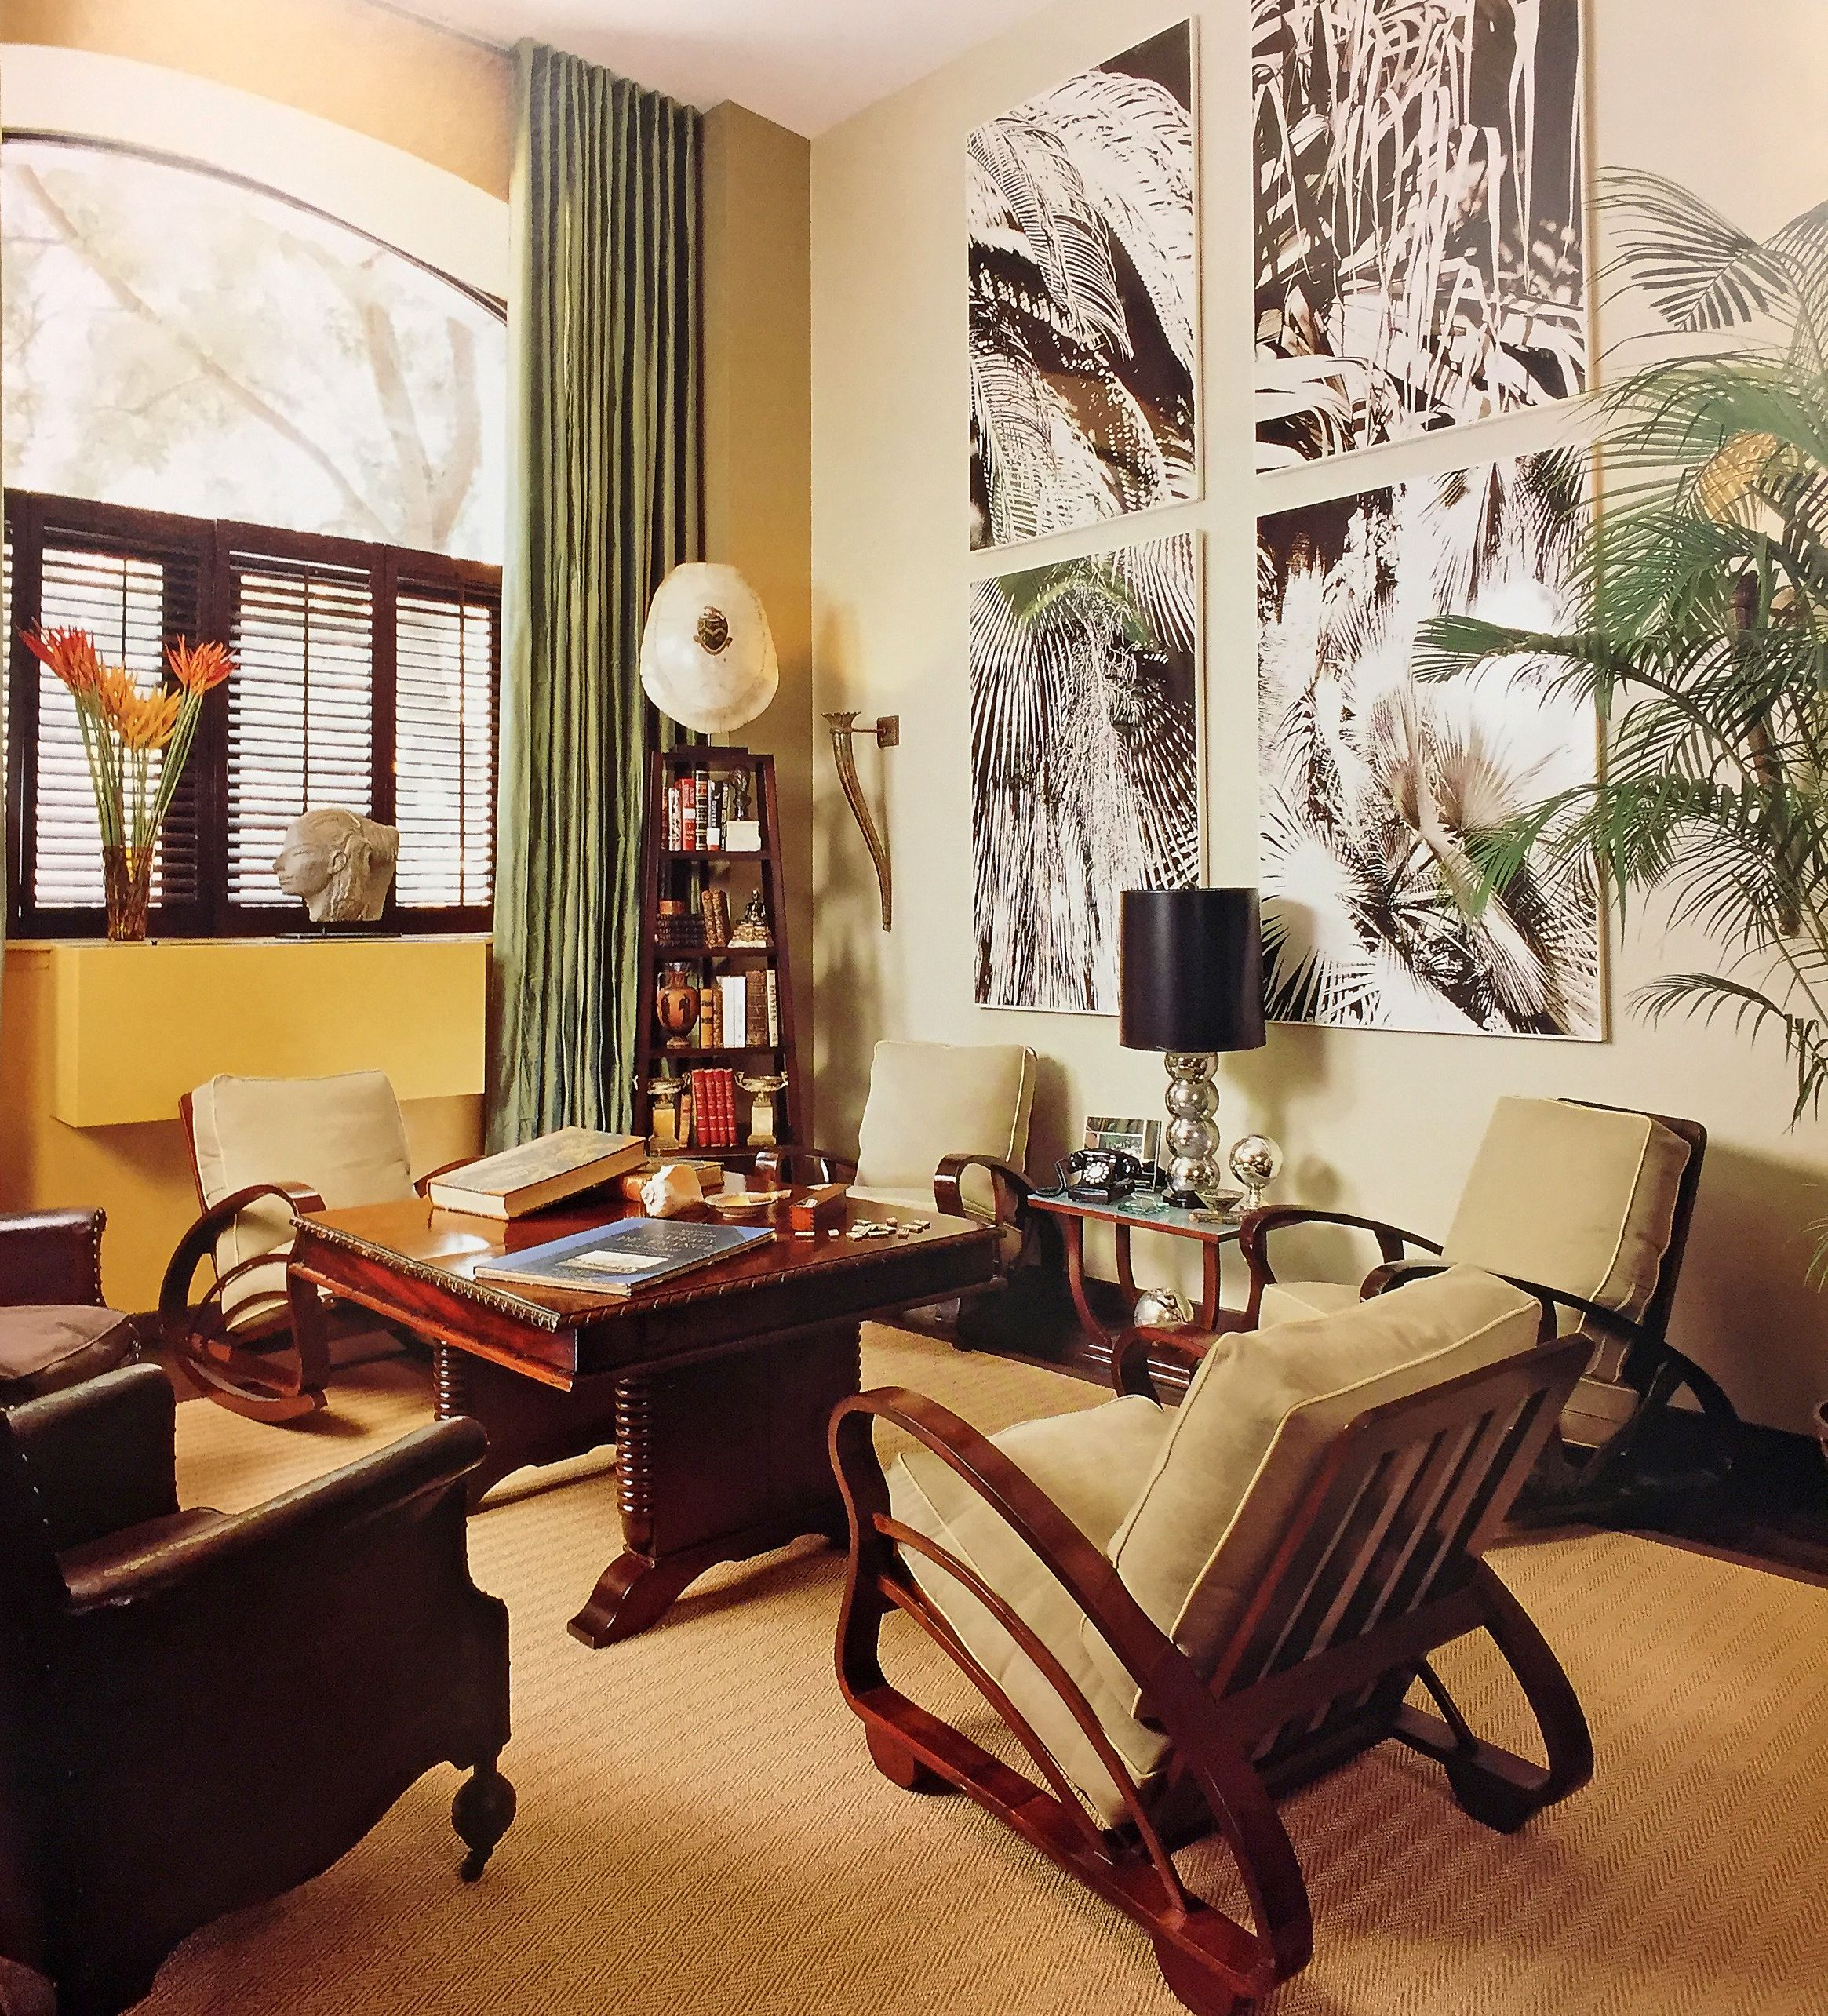 West Indies Style, British West Indies, Michael Connor, Tropical Interior,  British Colonial Style, Empire Style, Tropical Style, Furniture Styles, ...